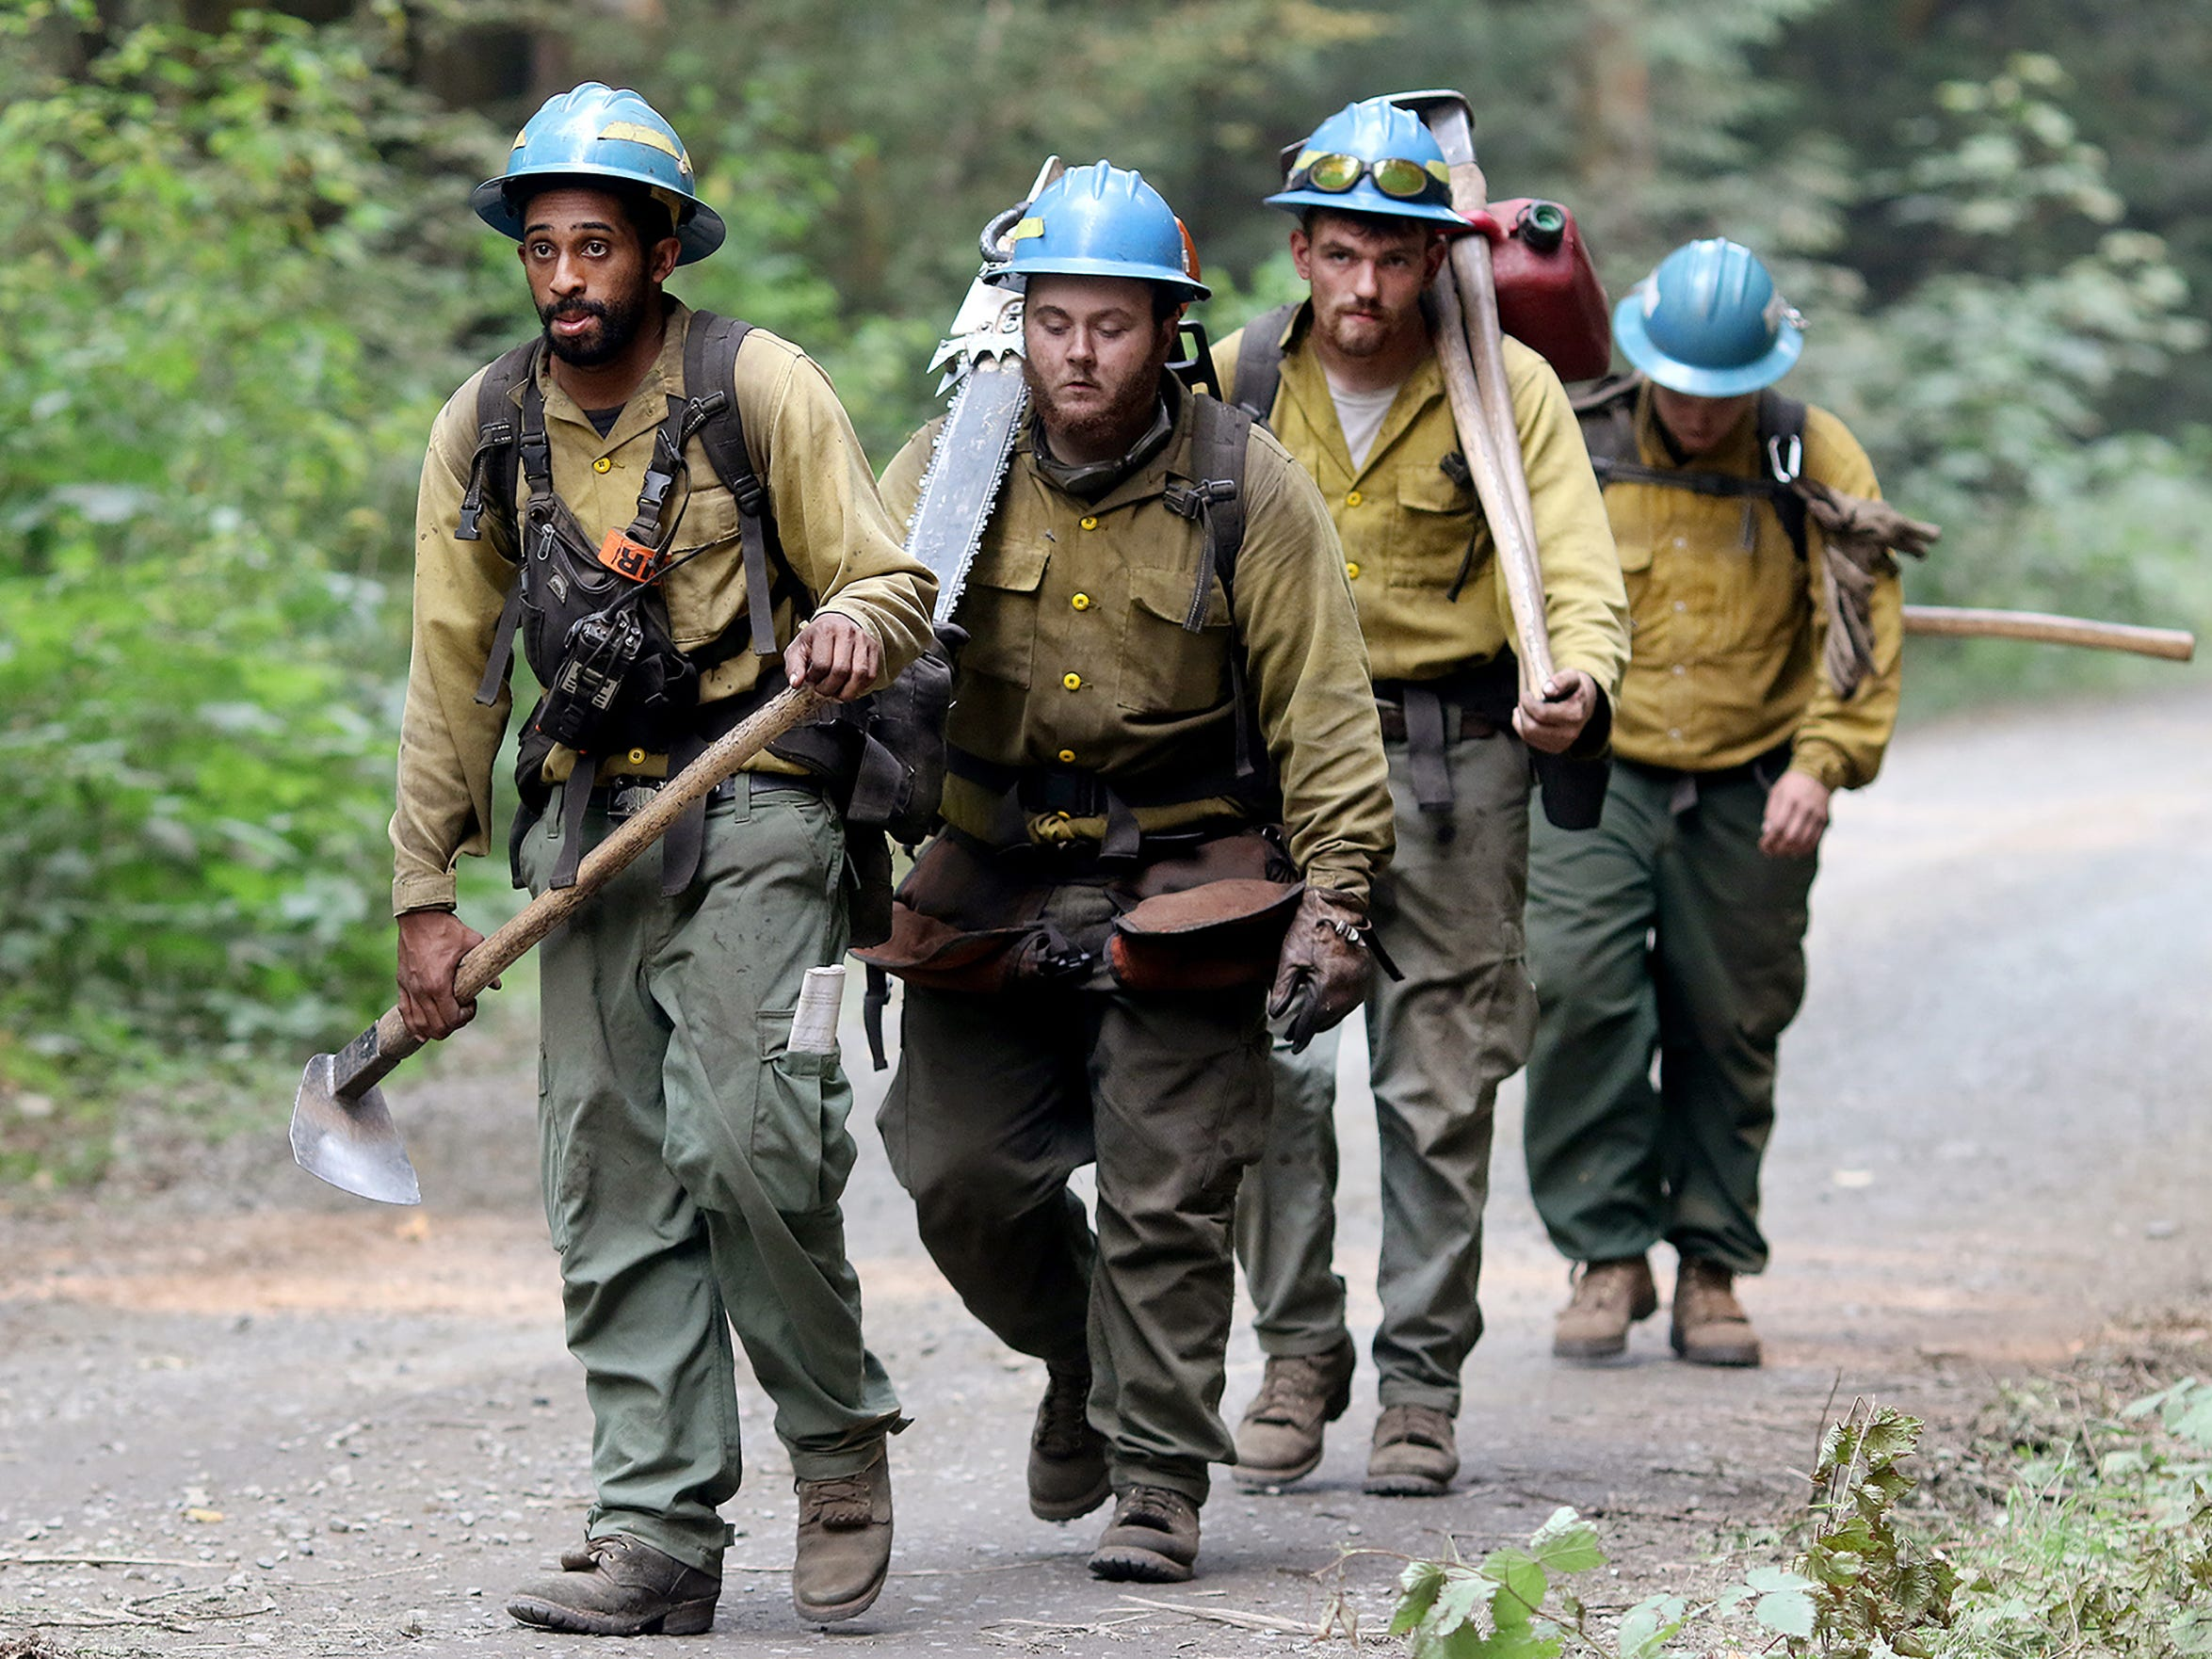 Aaron Reid, front, Brendon Cunningham, Matt VanDusen, and Shane Collins from Lost River Fire Management of Klamath Falls, Oregon head back to their vehicle after working at the Maple Fire which is above the community of Hamma Hamma around 23 miles north of Shelton in the Olympic National Forest on August 15, 2018.